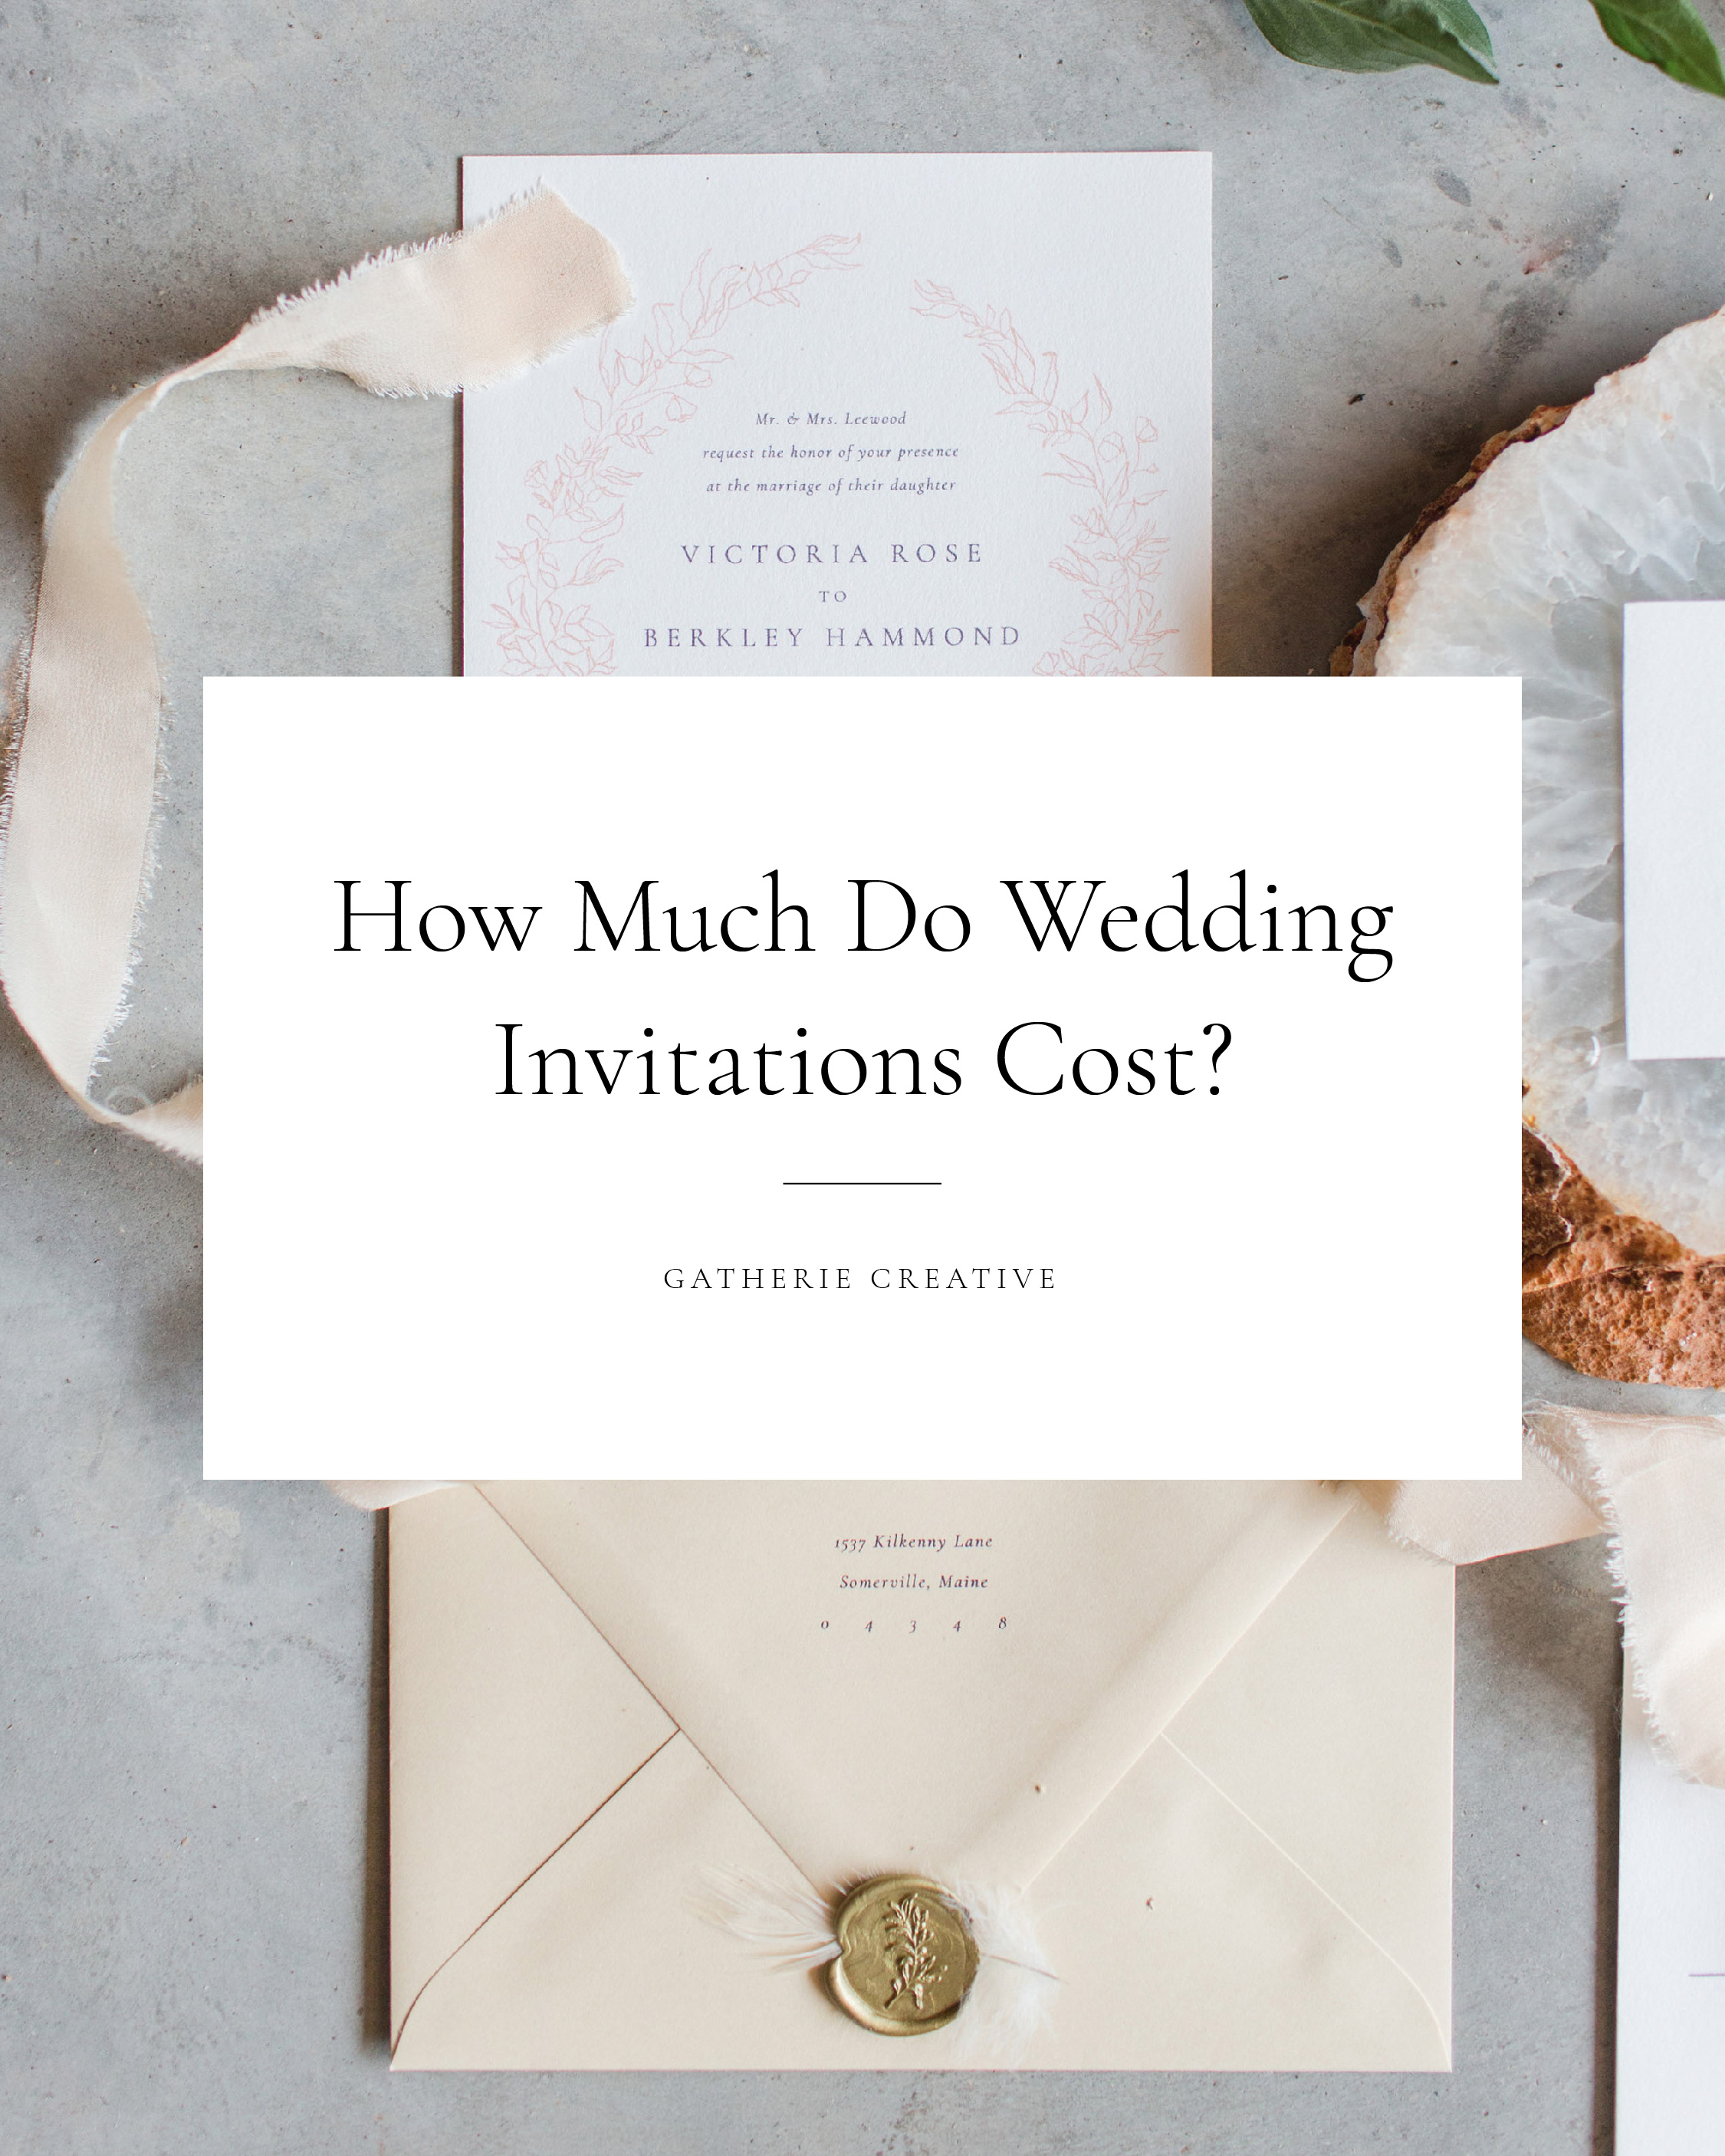 Gatherie Creative HOW MUCH DO WEDDING INVITATIONS COST